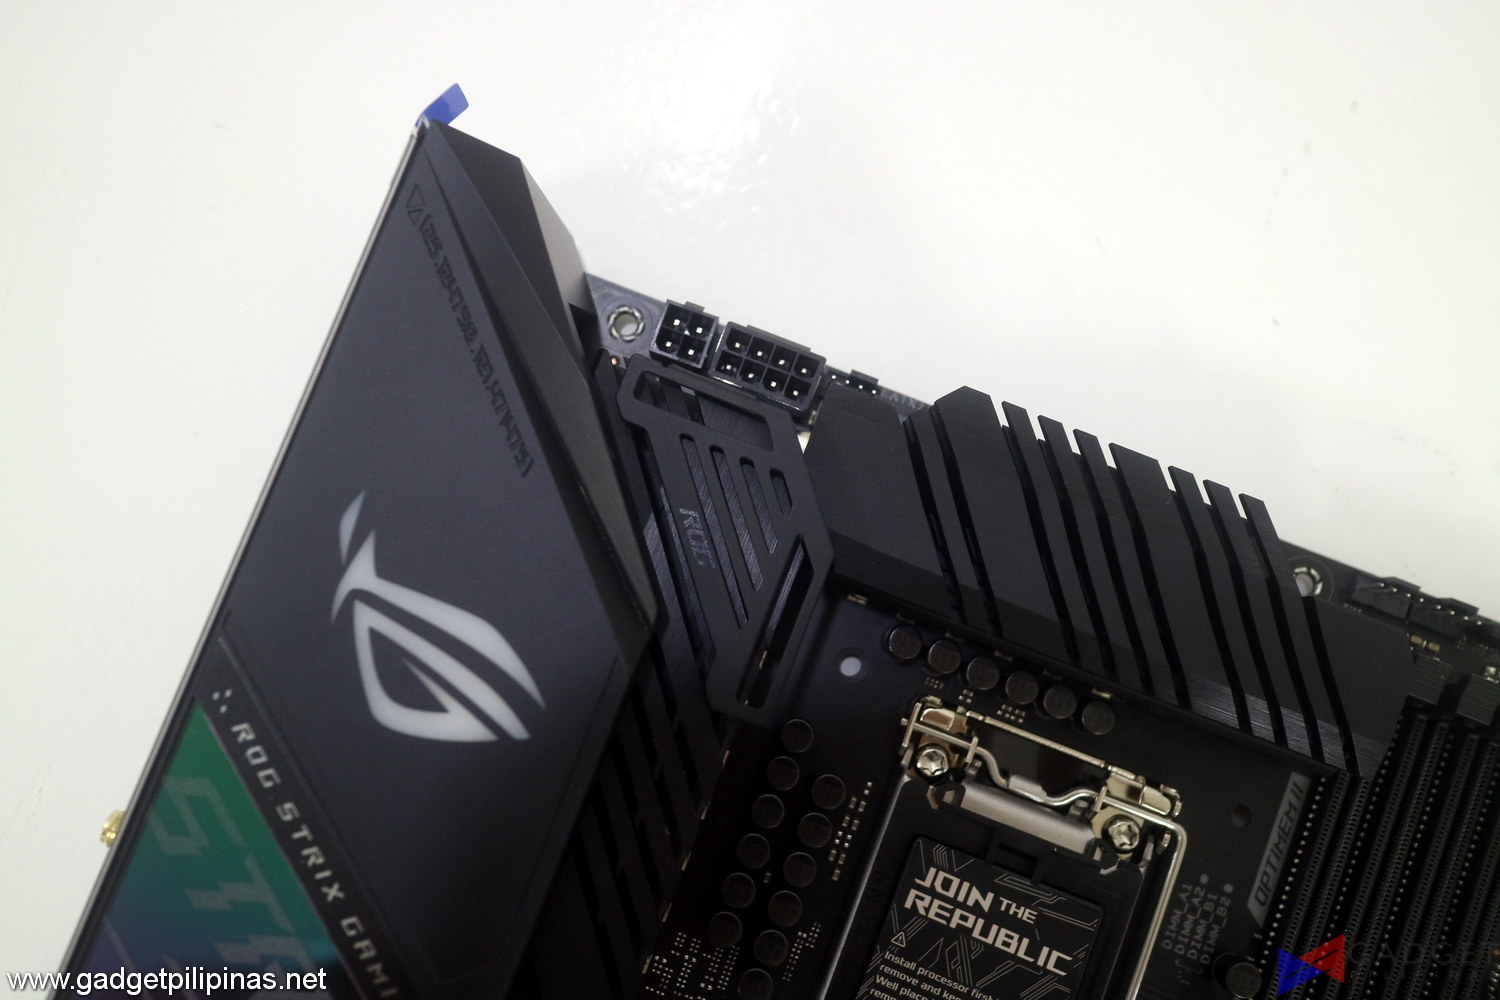 ASUS ROG Strix Z490-E Gaming Motherboard Initial Review - solid core pins